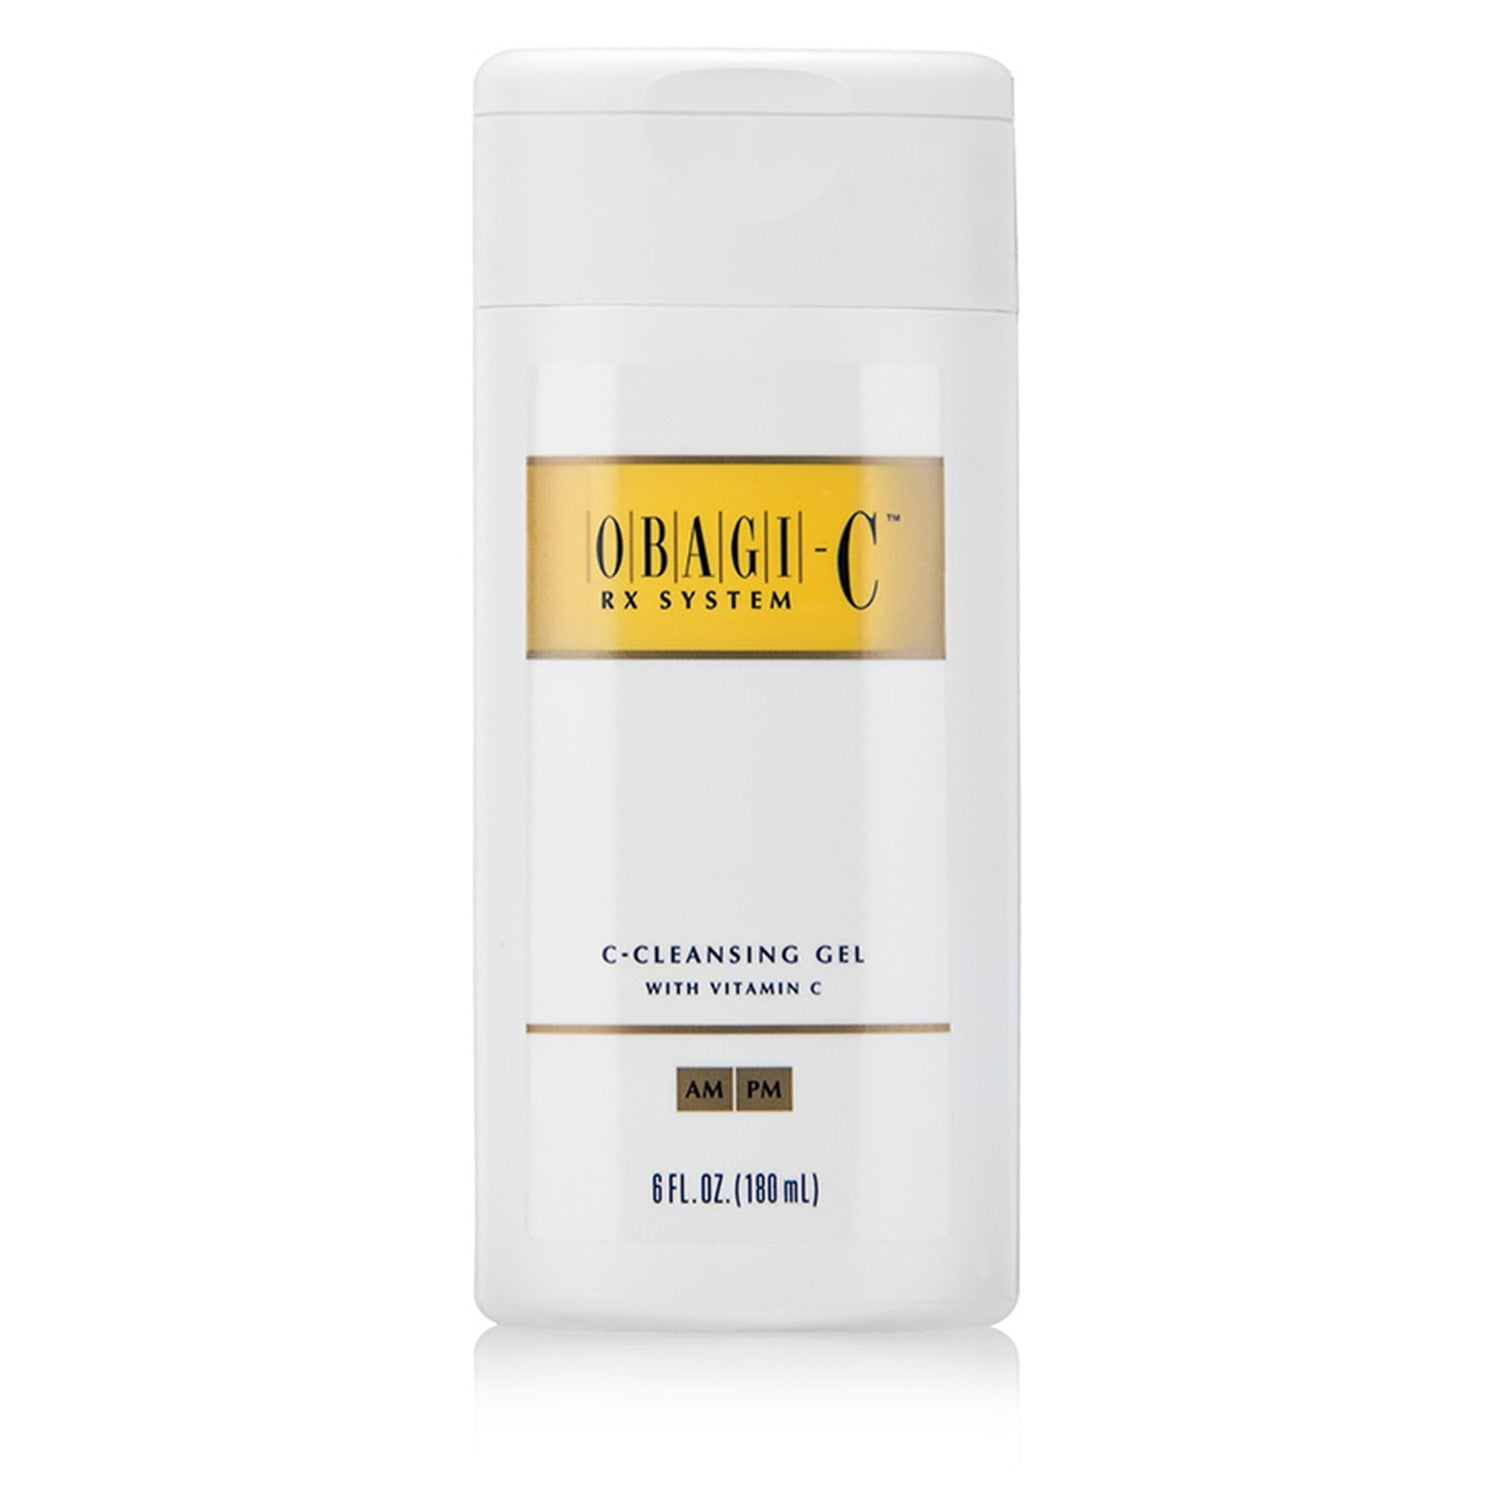 Obagi-C System C-Cleansing Gel